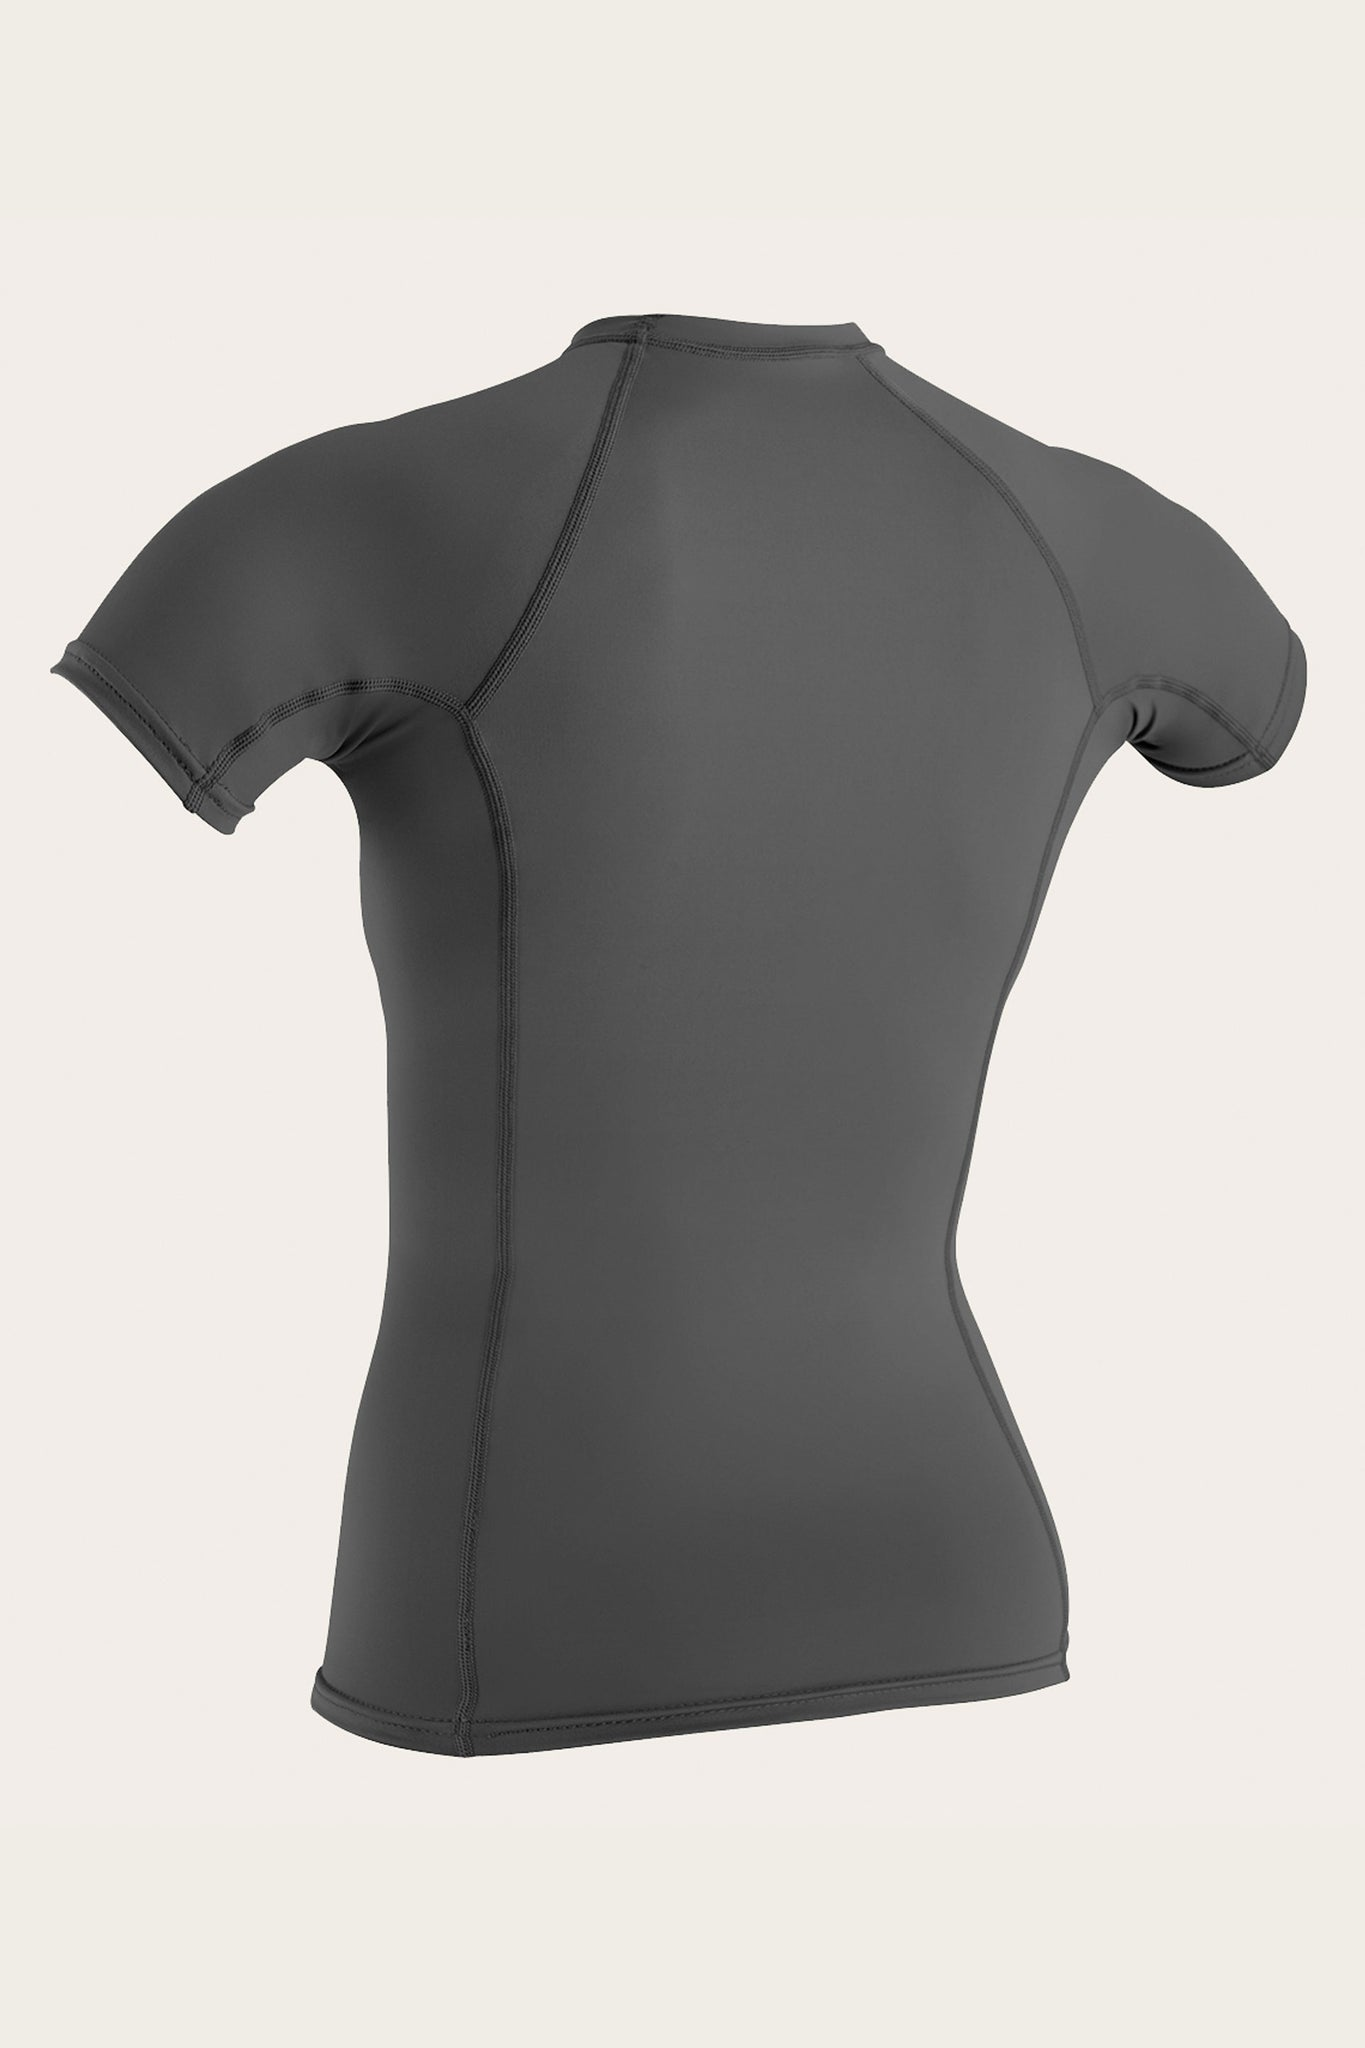 Women's Basic 50+ S/S Rash Guard - Graphite | O'Neill